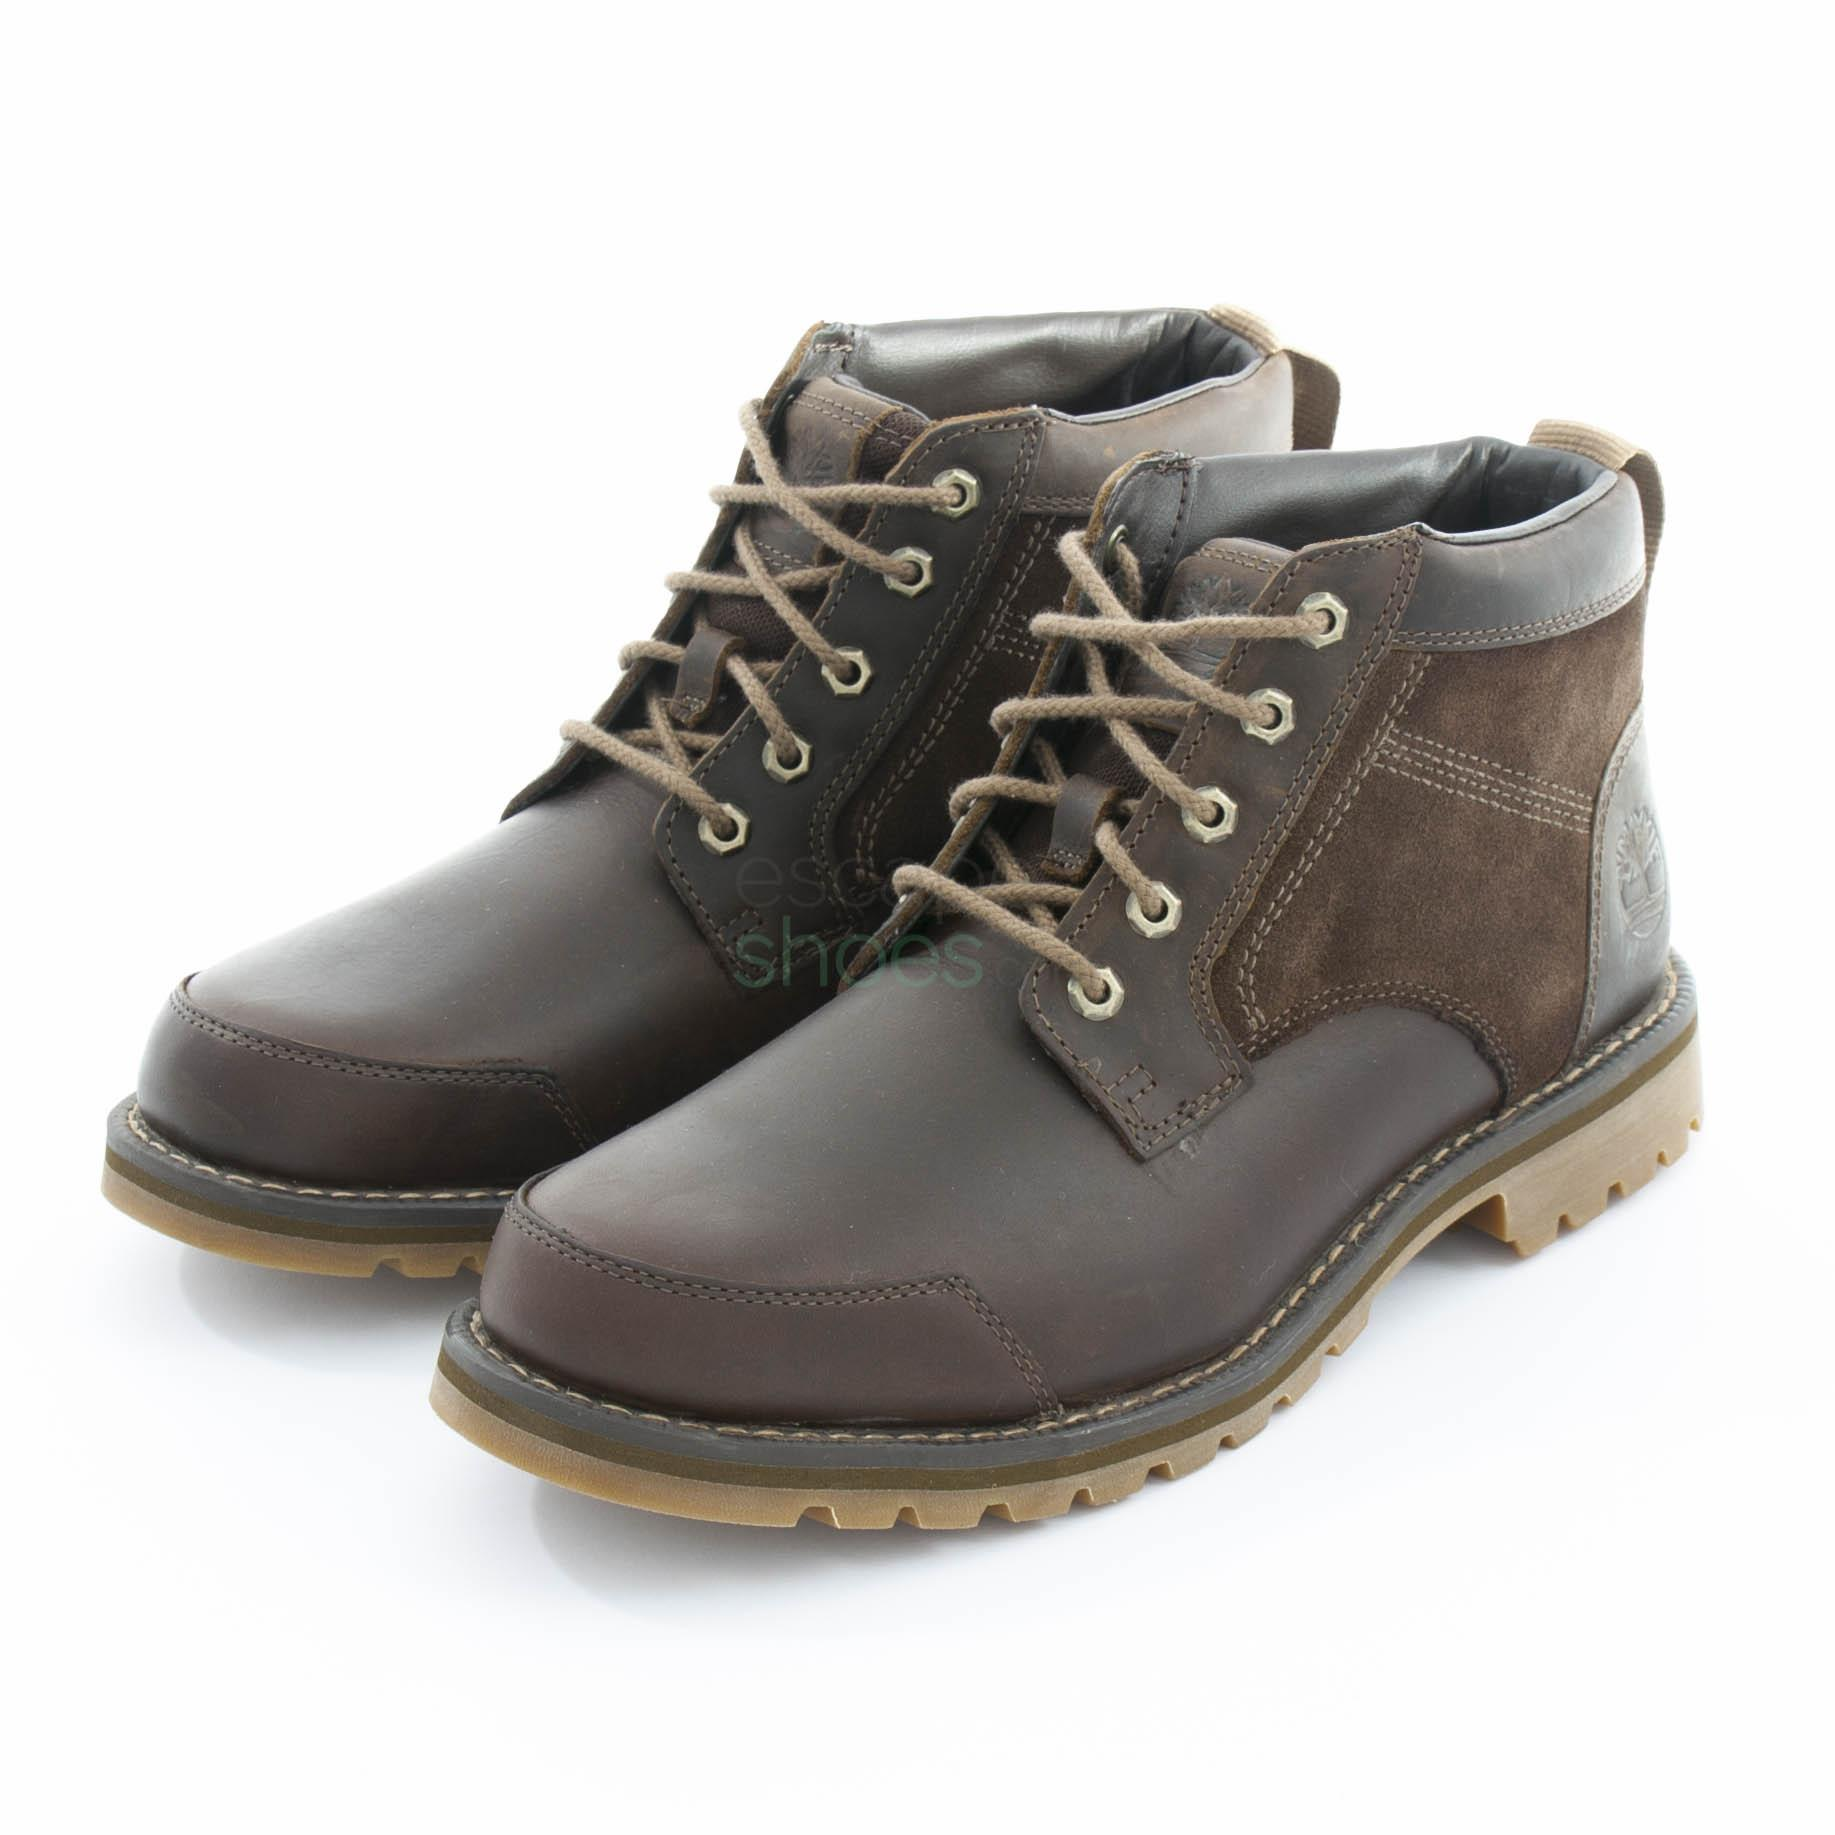 5be0743615f Buy your Boots TIMBERLAND Larchmont Chukka Gaucho A1OJM here ...